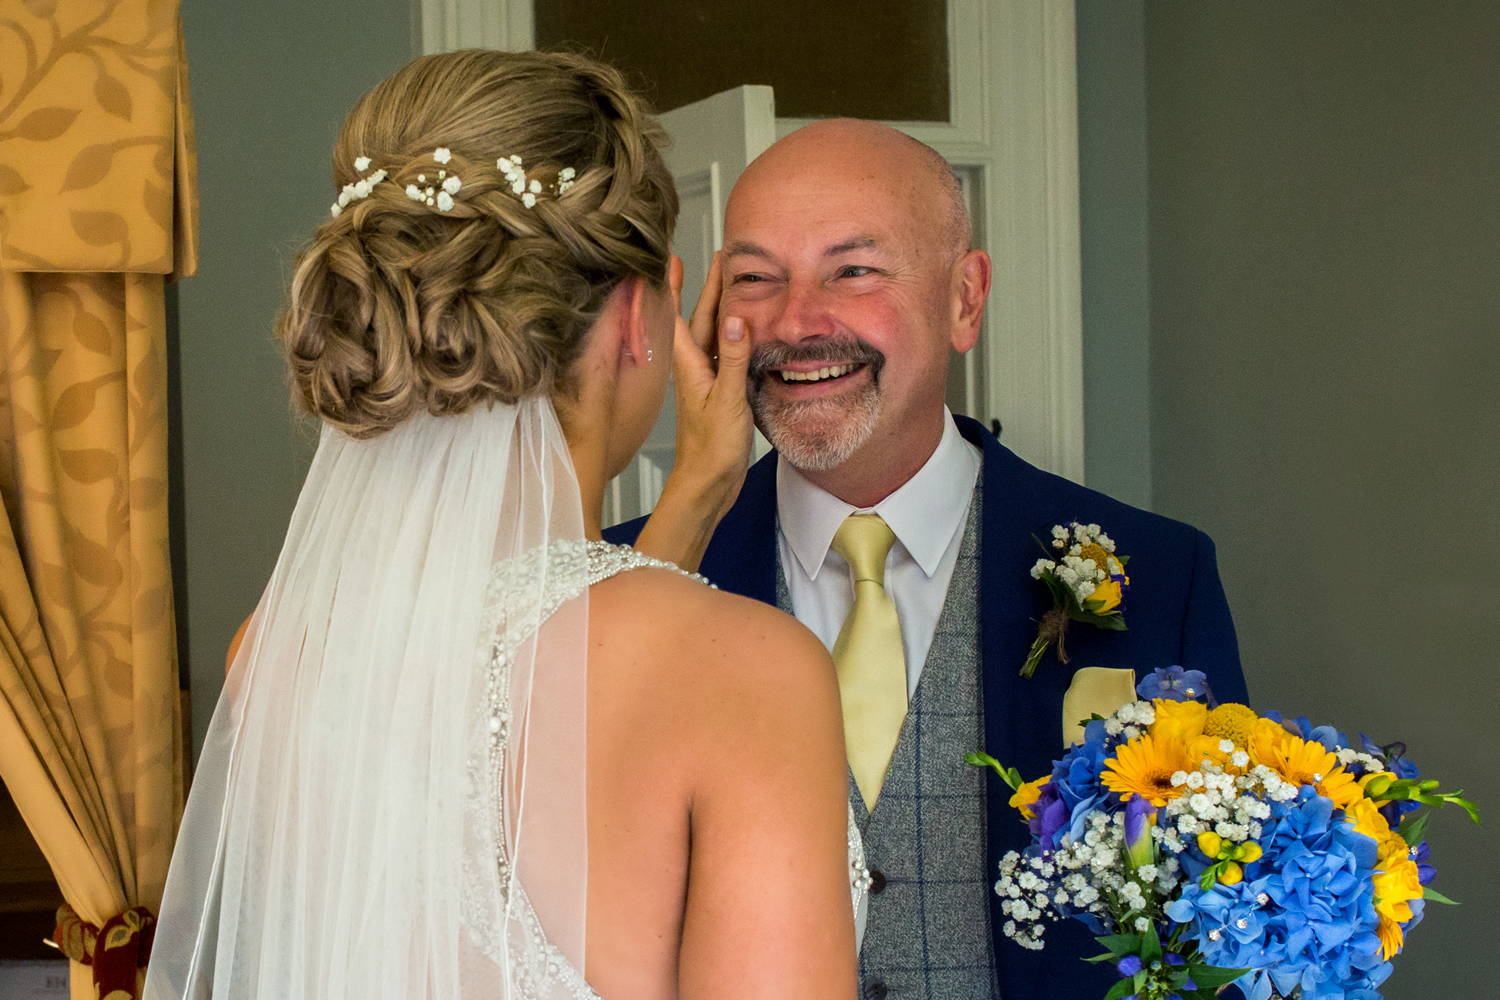 best father of bride reaction to bride